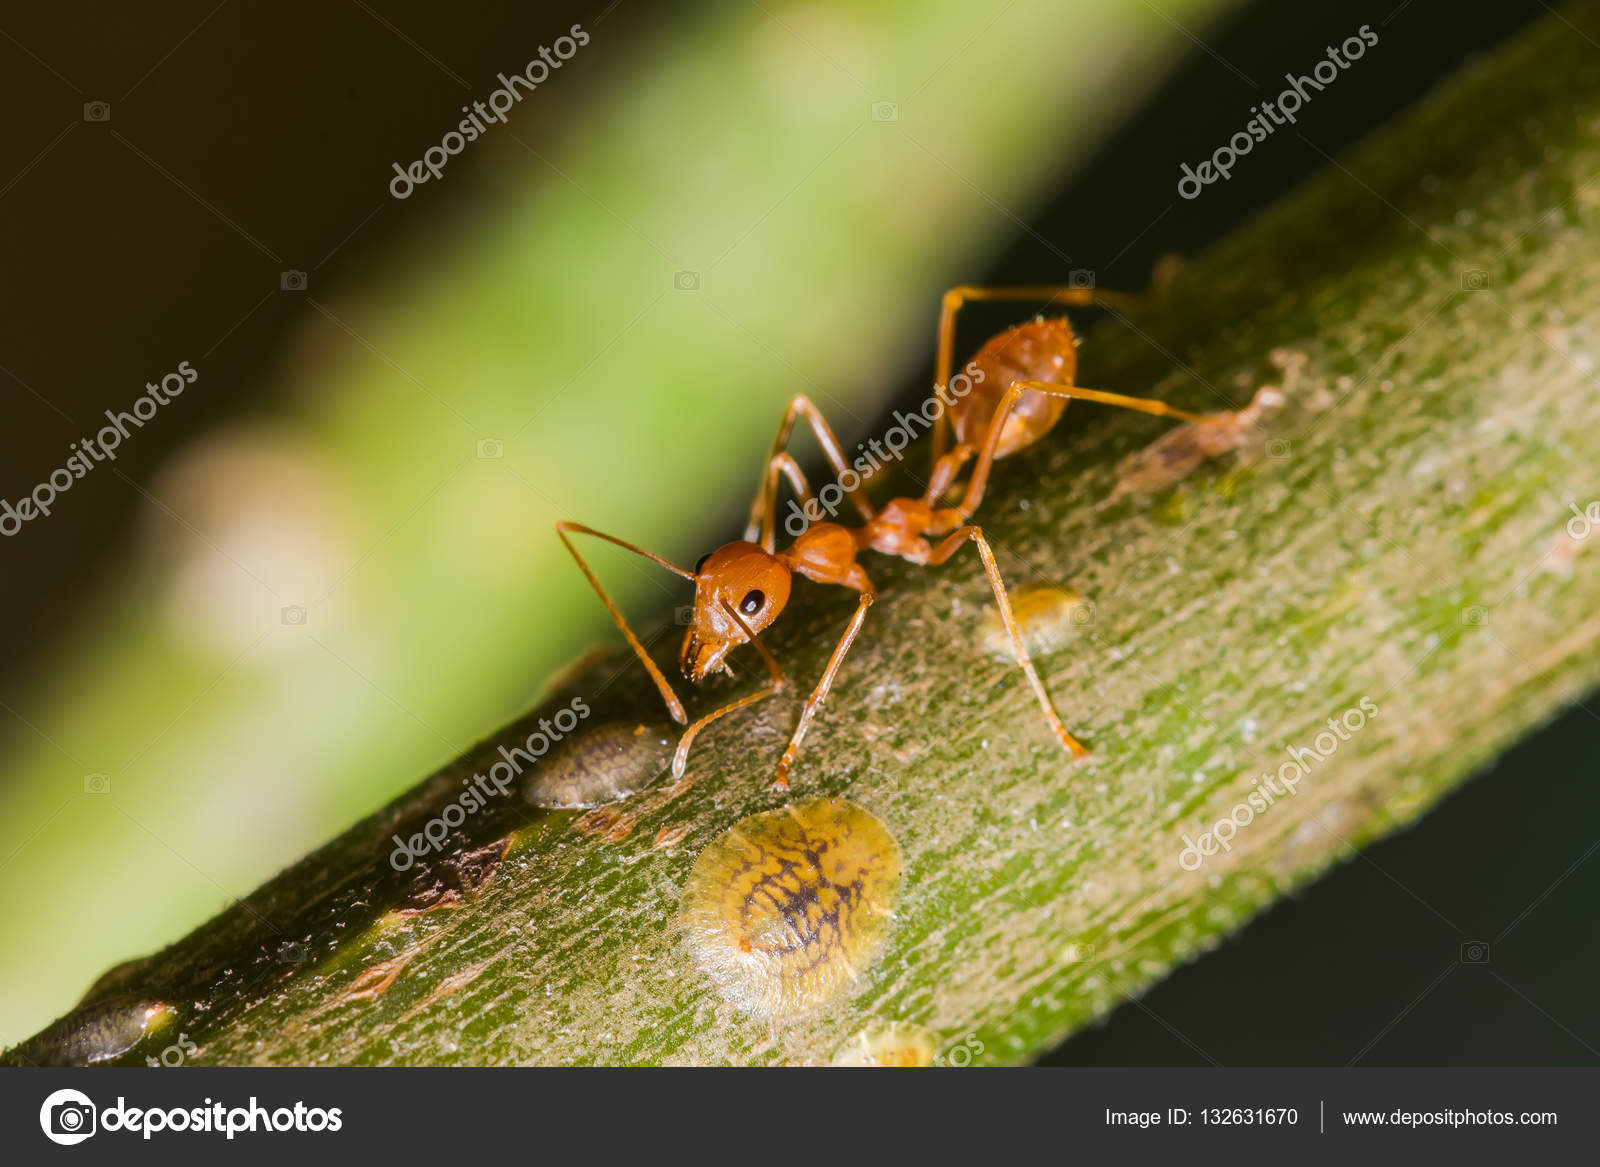 The Working Ants Stock Photo Suwatsir 132631670